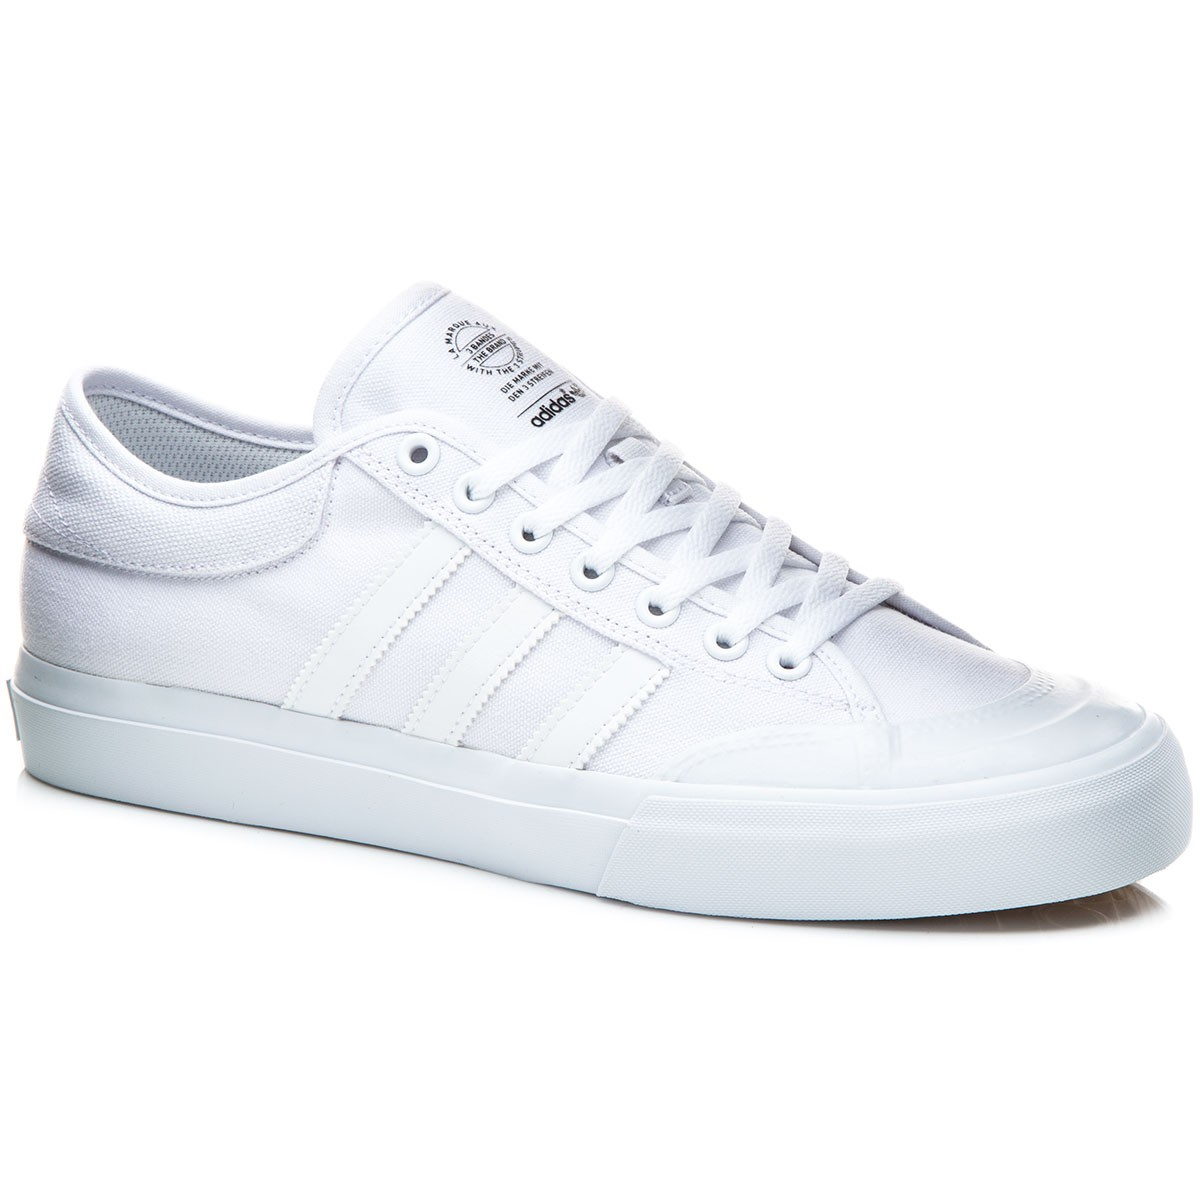 3c3d78292a3 ... where can i buy adidas shoes white d830f ee0e6